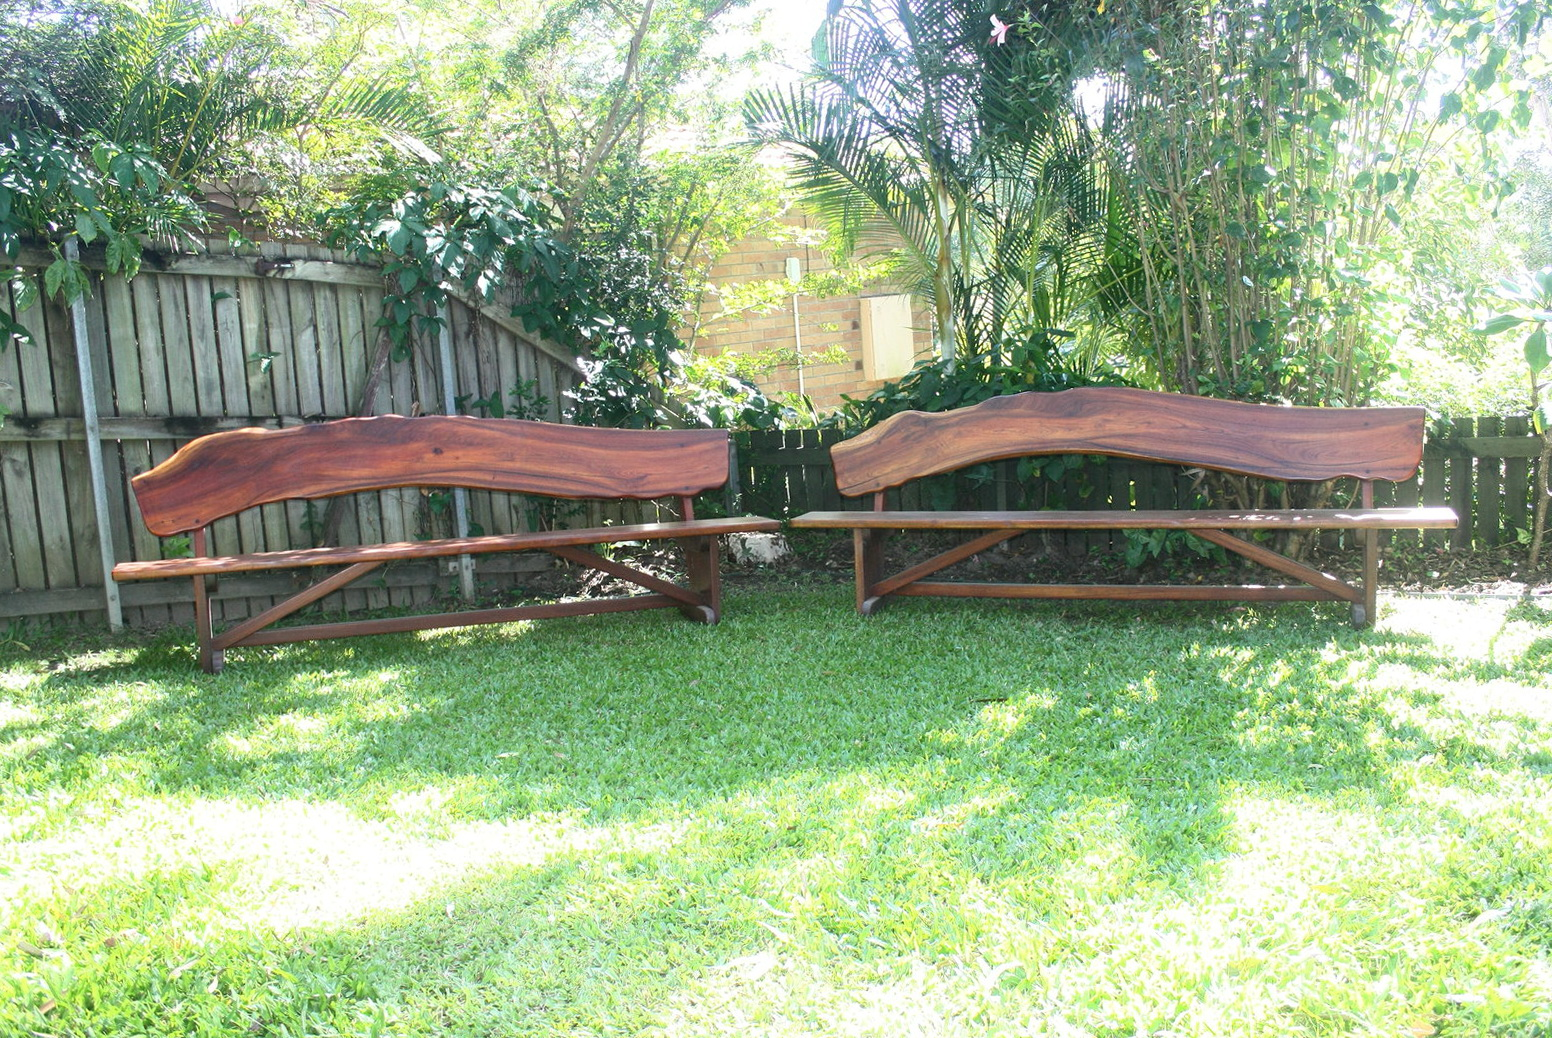 Wooden Benches For Sale Pretoria Home Design Ideas: wooden bench for sale